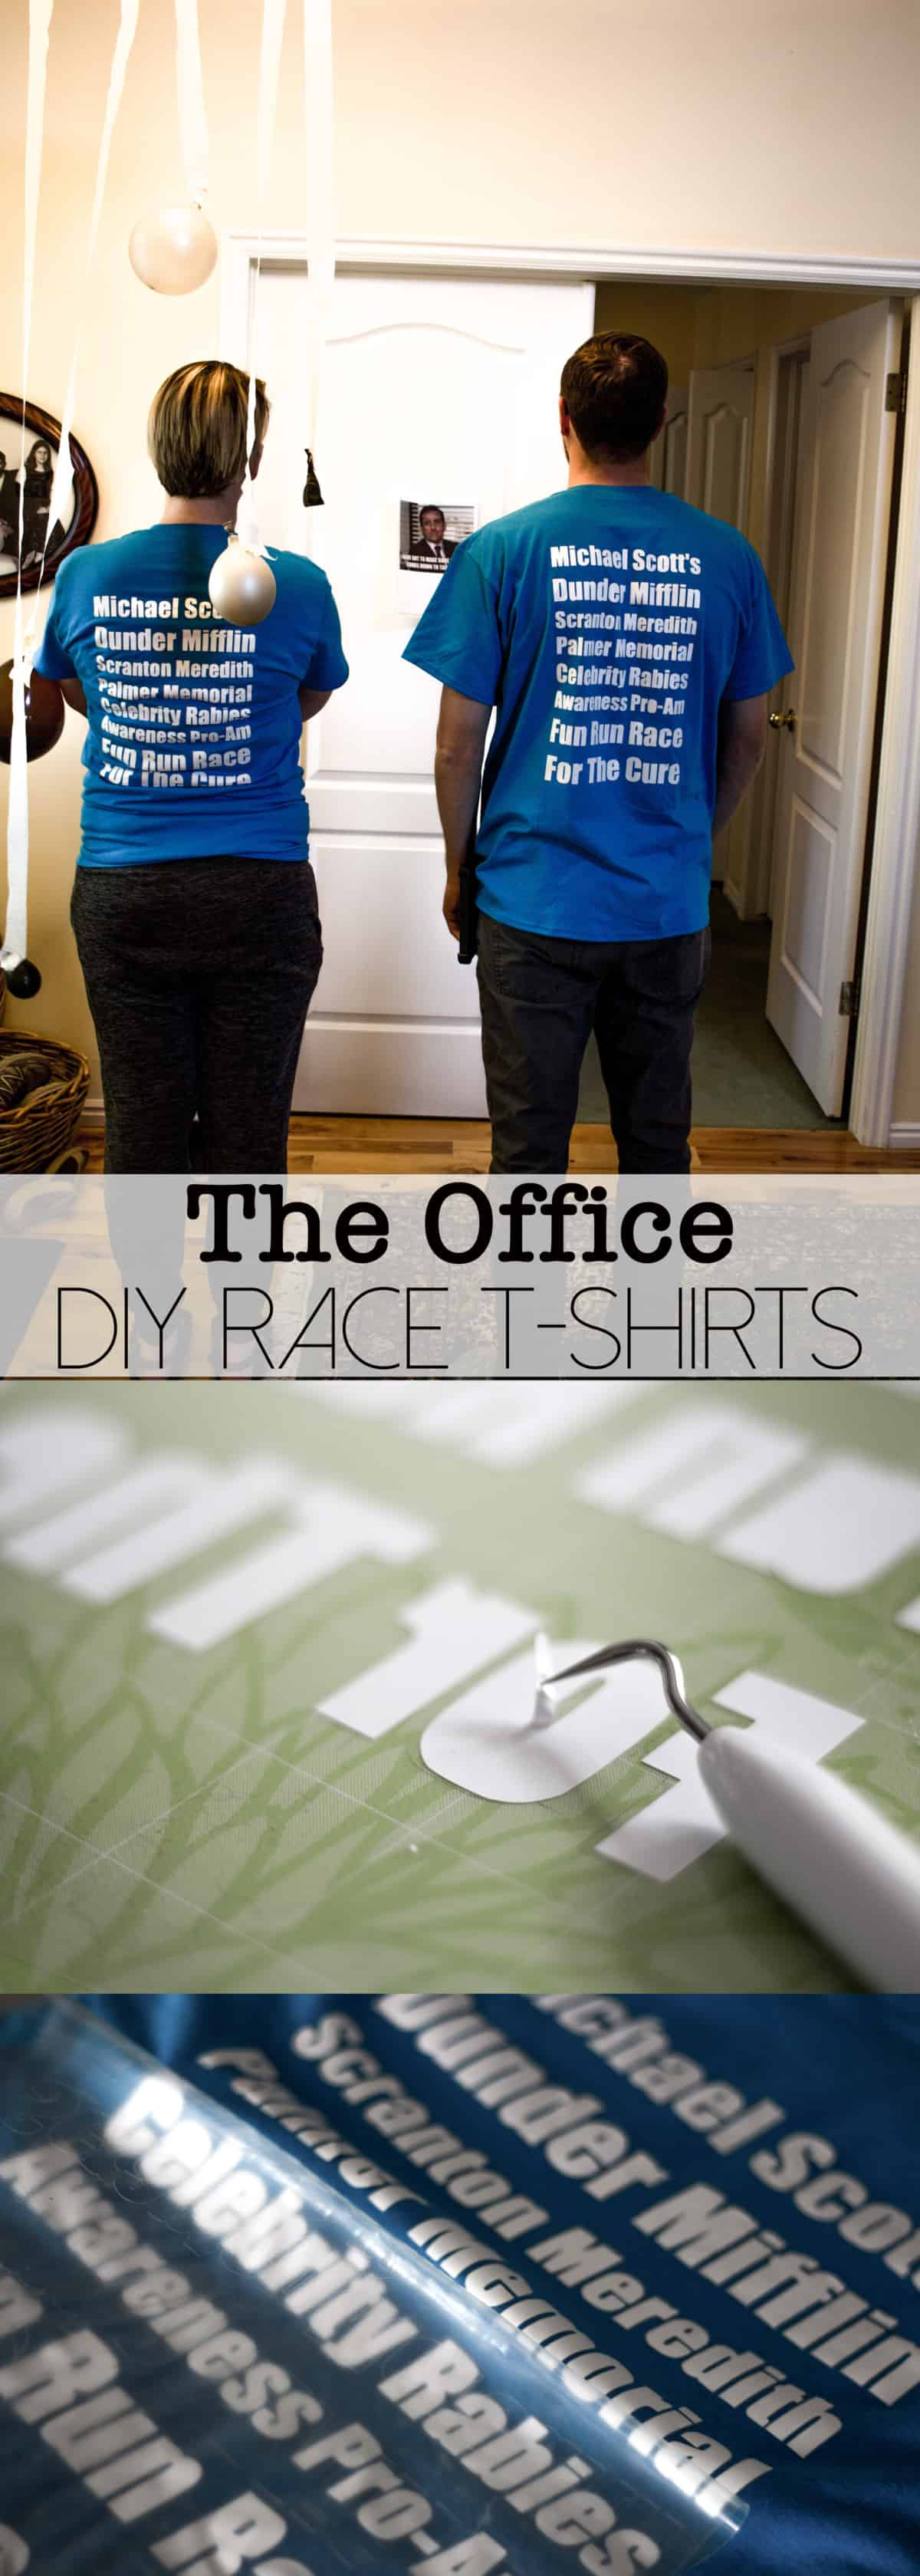 Every Office fan needs a Dunder Mifflin Fun Run T-Shirt! This tutorial will show you how simple it is to make your very own!